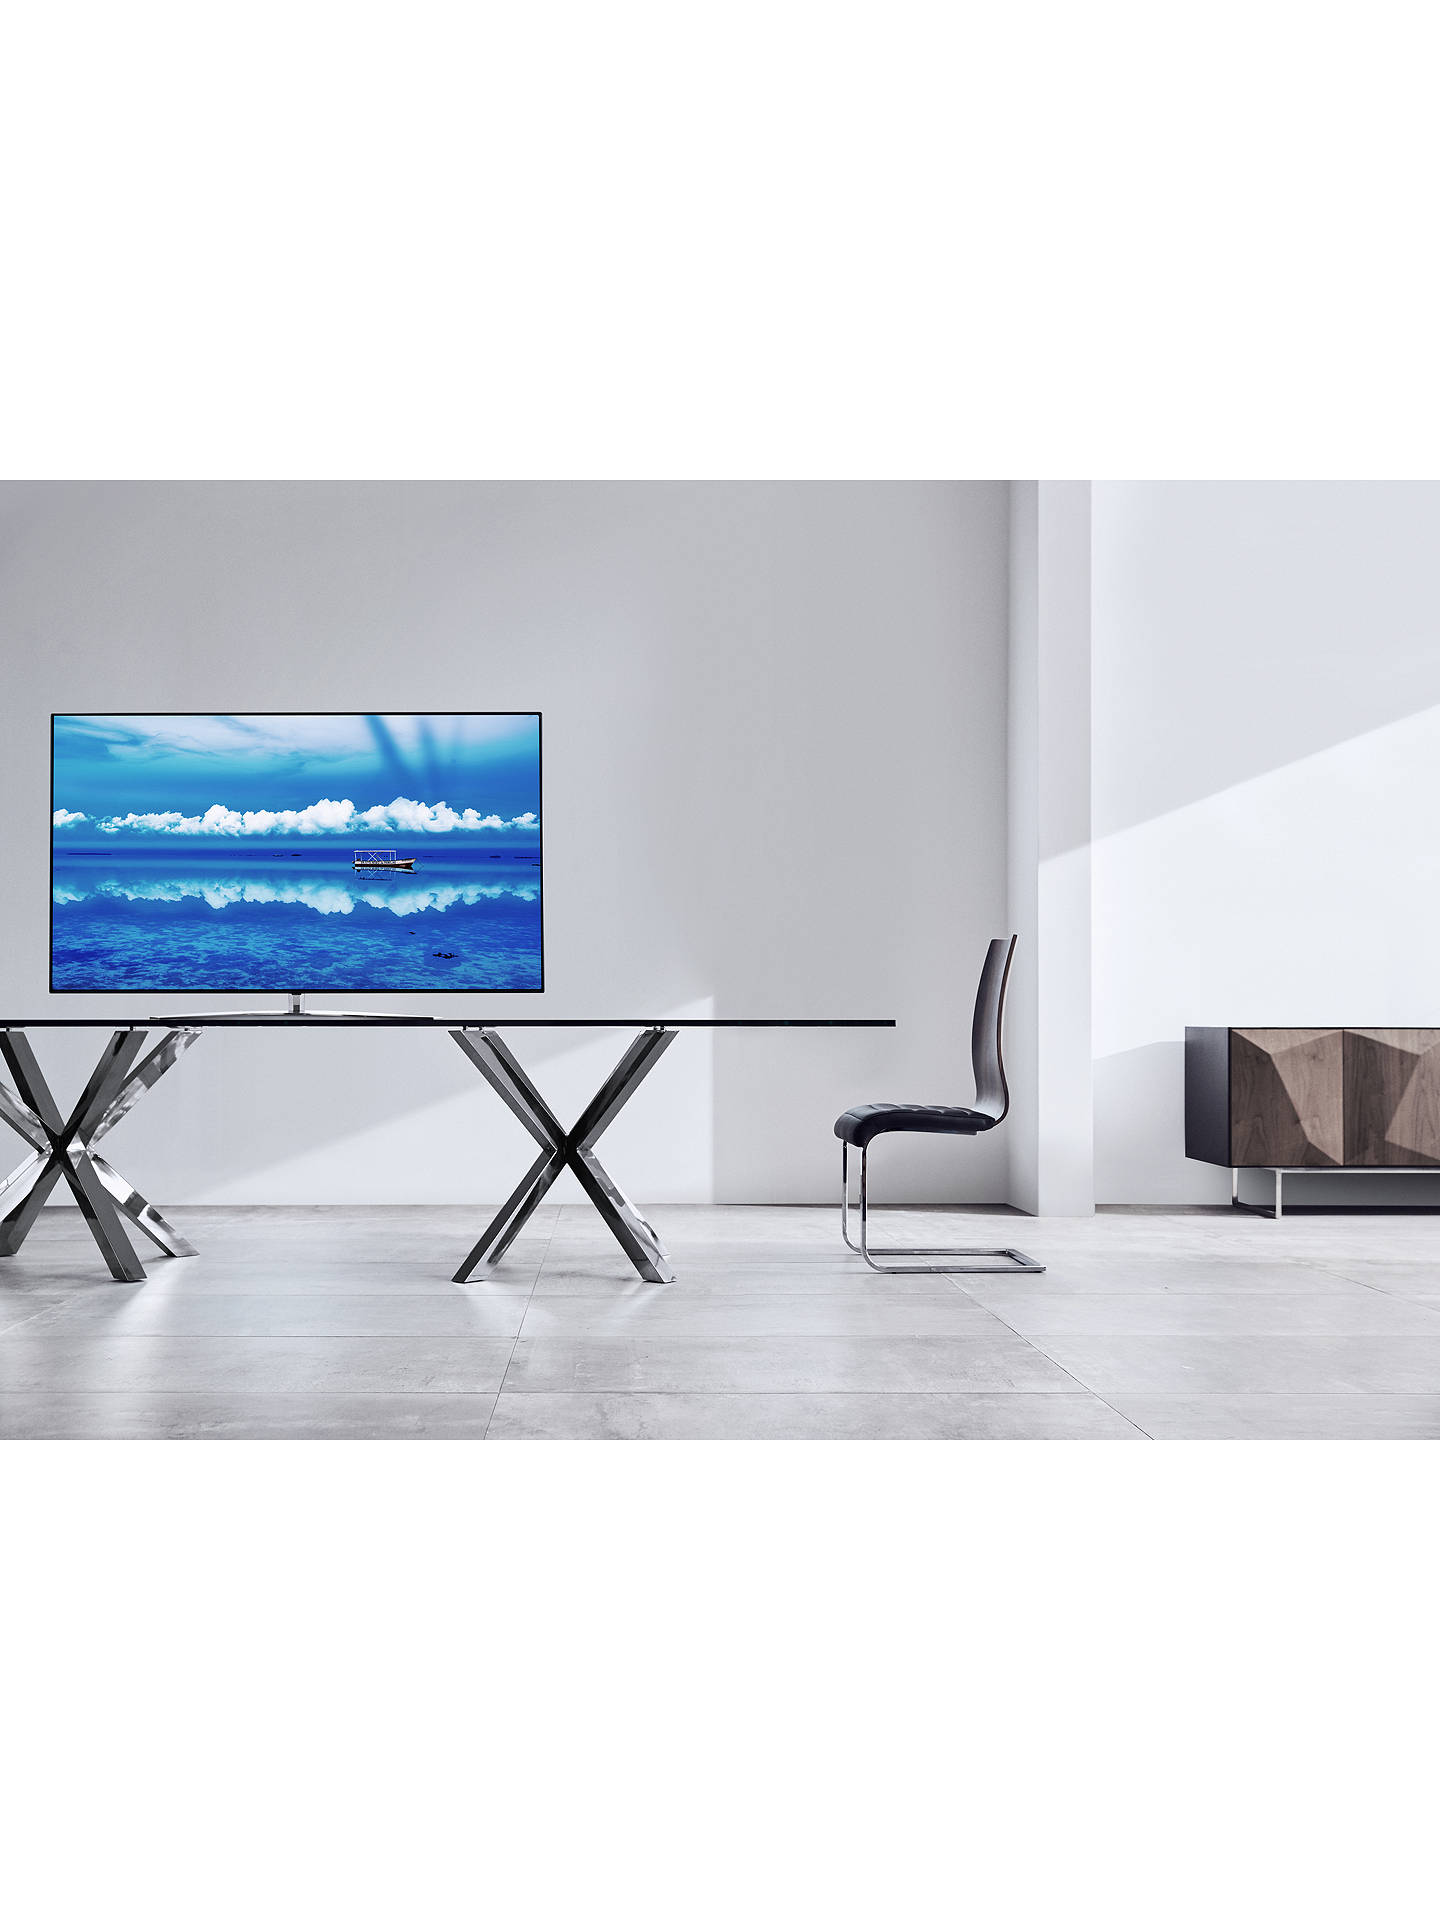 "Buy LG 55SM9800PLA (2019) LED HDR NanoCell 4K Ultra HD Smart TV, 55"" with Freeview Play/Freesat HD, Cinema Screen Design, Dolby Atmos & Crescent Stand, Ultra HD Certified, Black & Dark Silver Online at johnlewis.com"